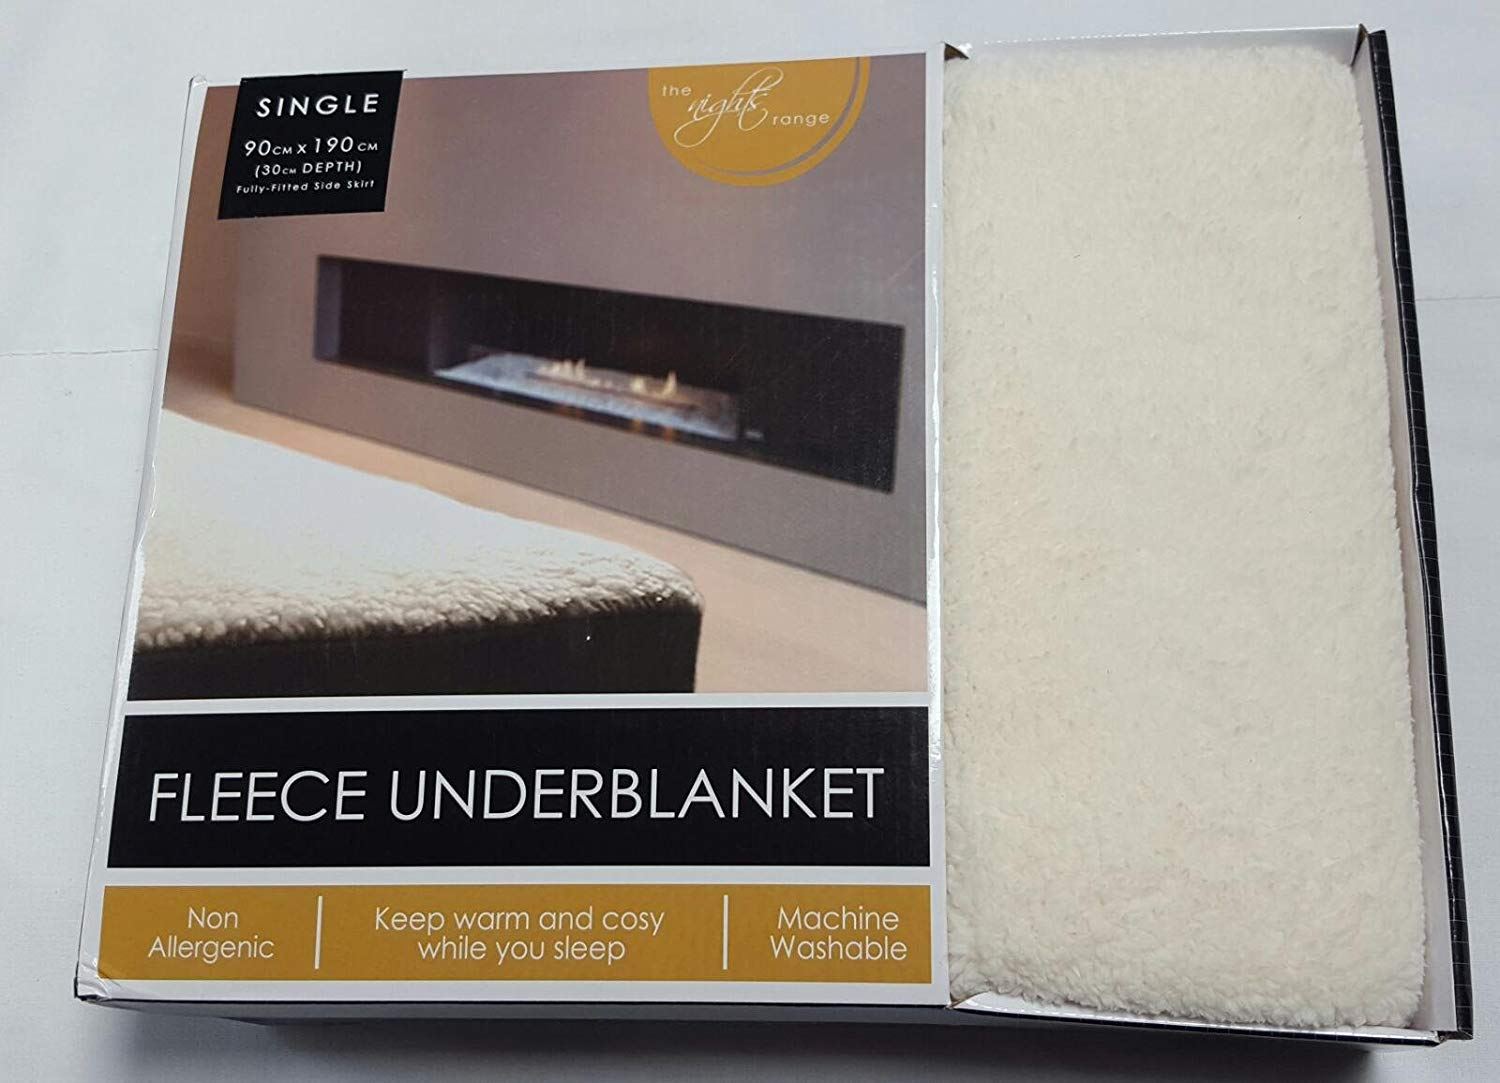 Quality Fleece Underblanket Deep Fitted Thermal Mattress Protector